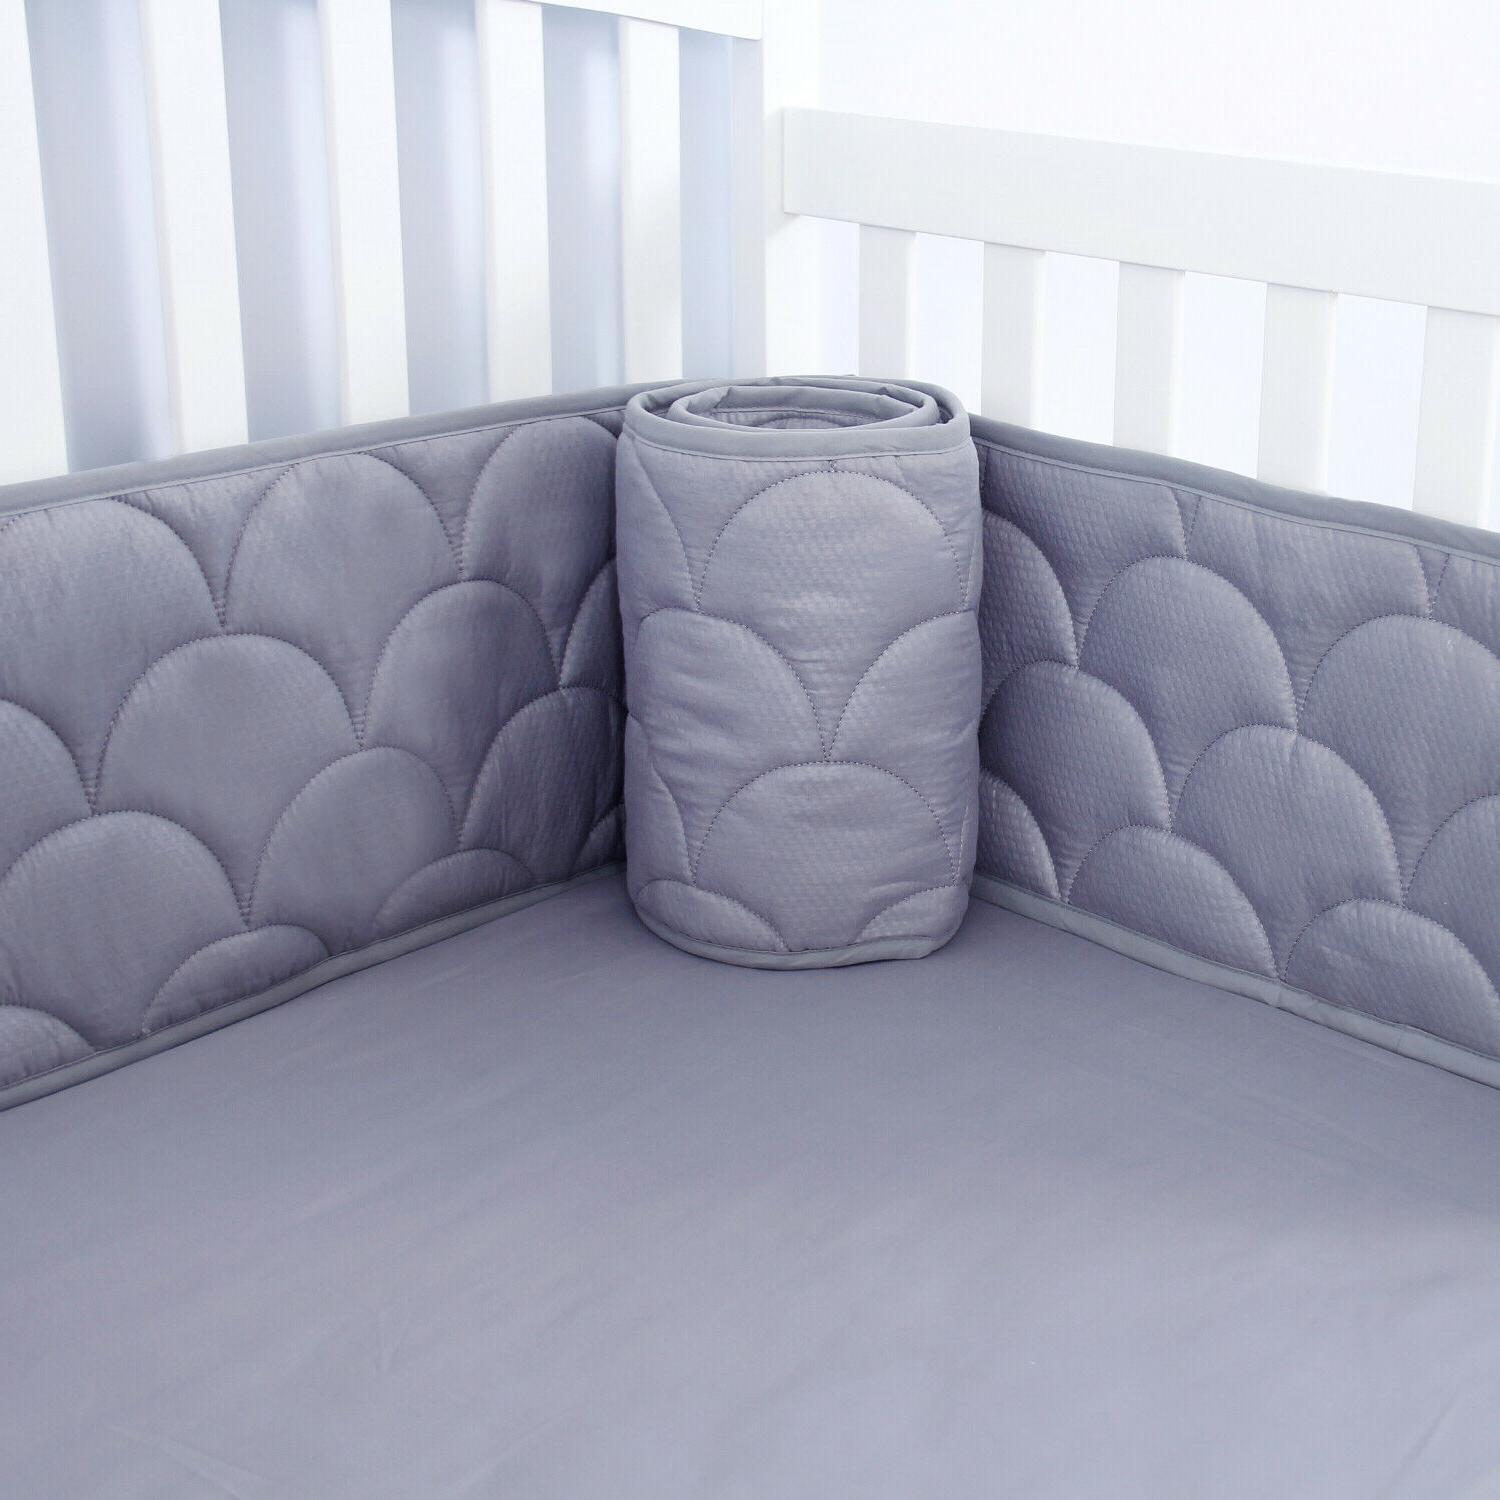 baby crib bumper pads for standard cribs